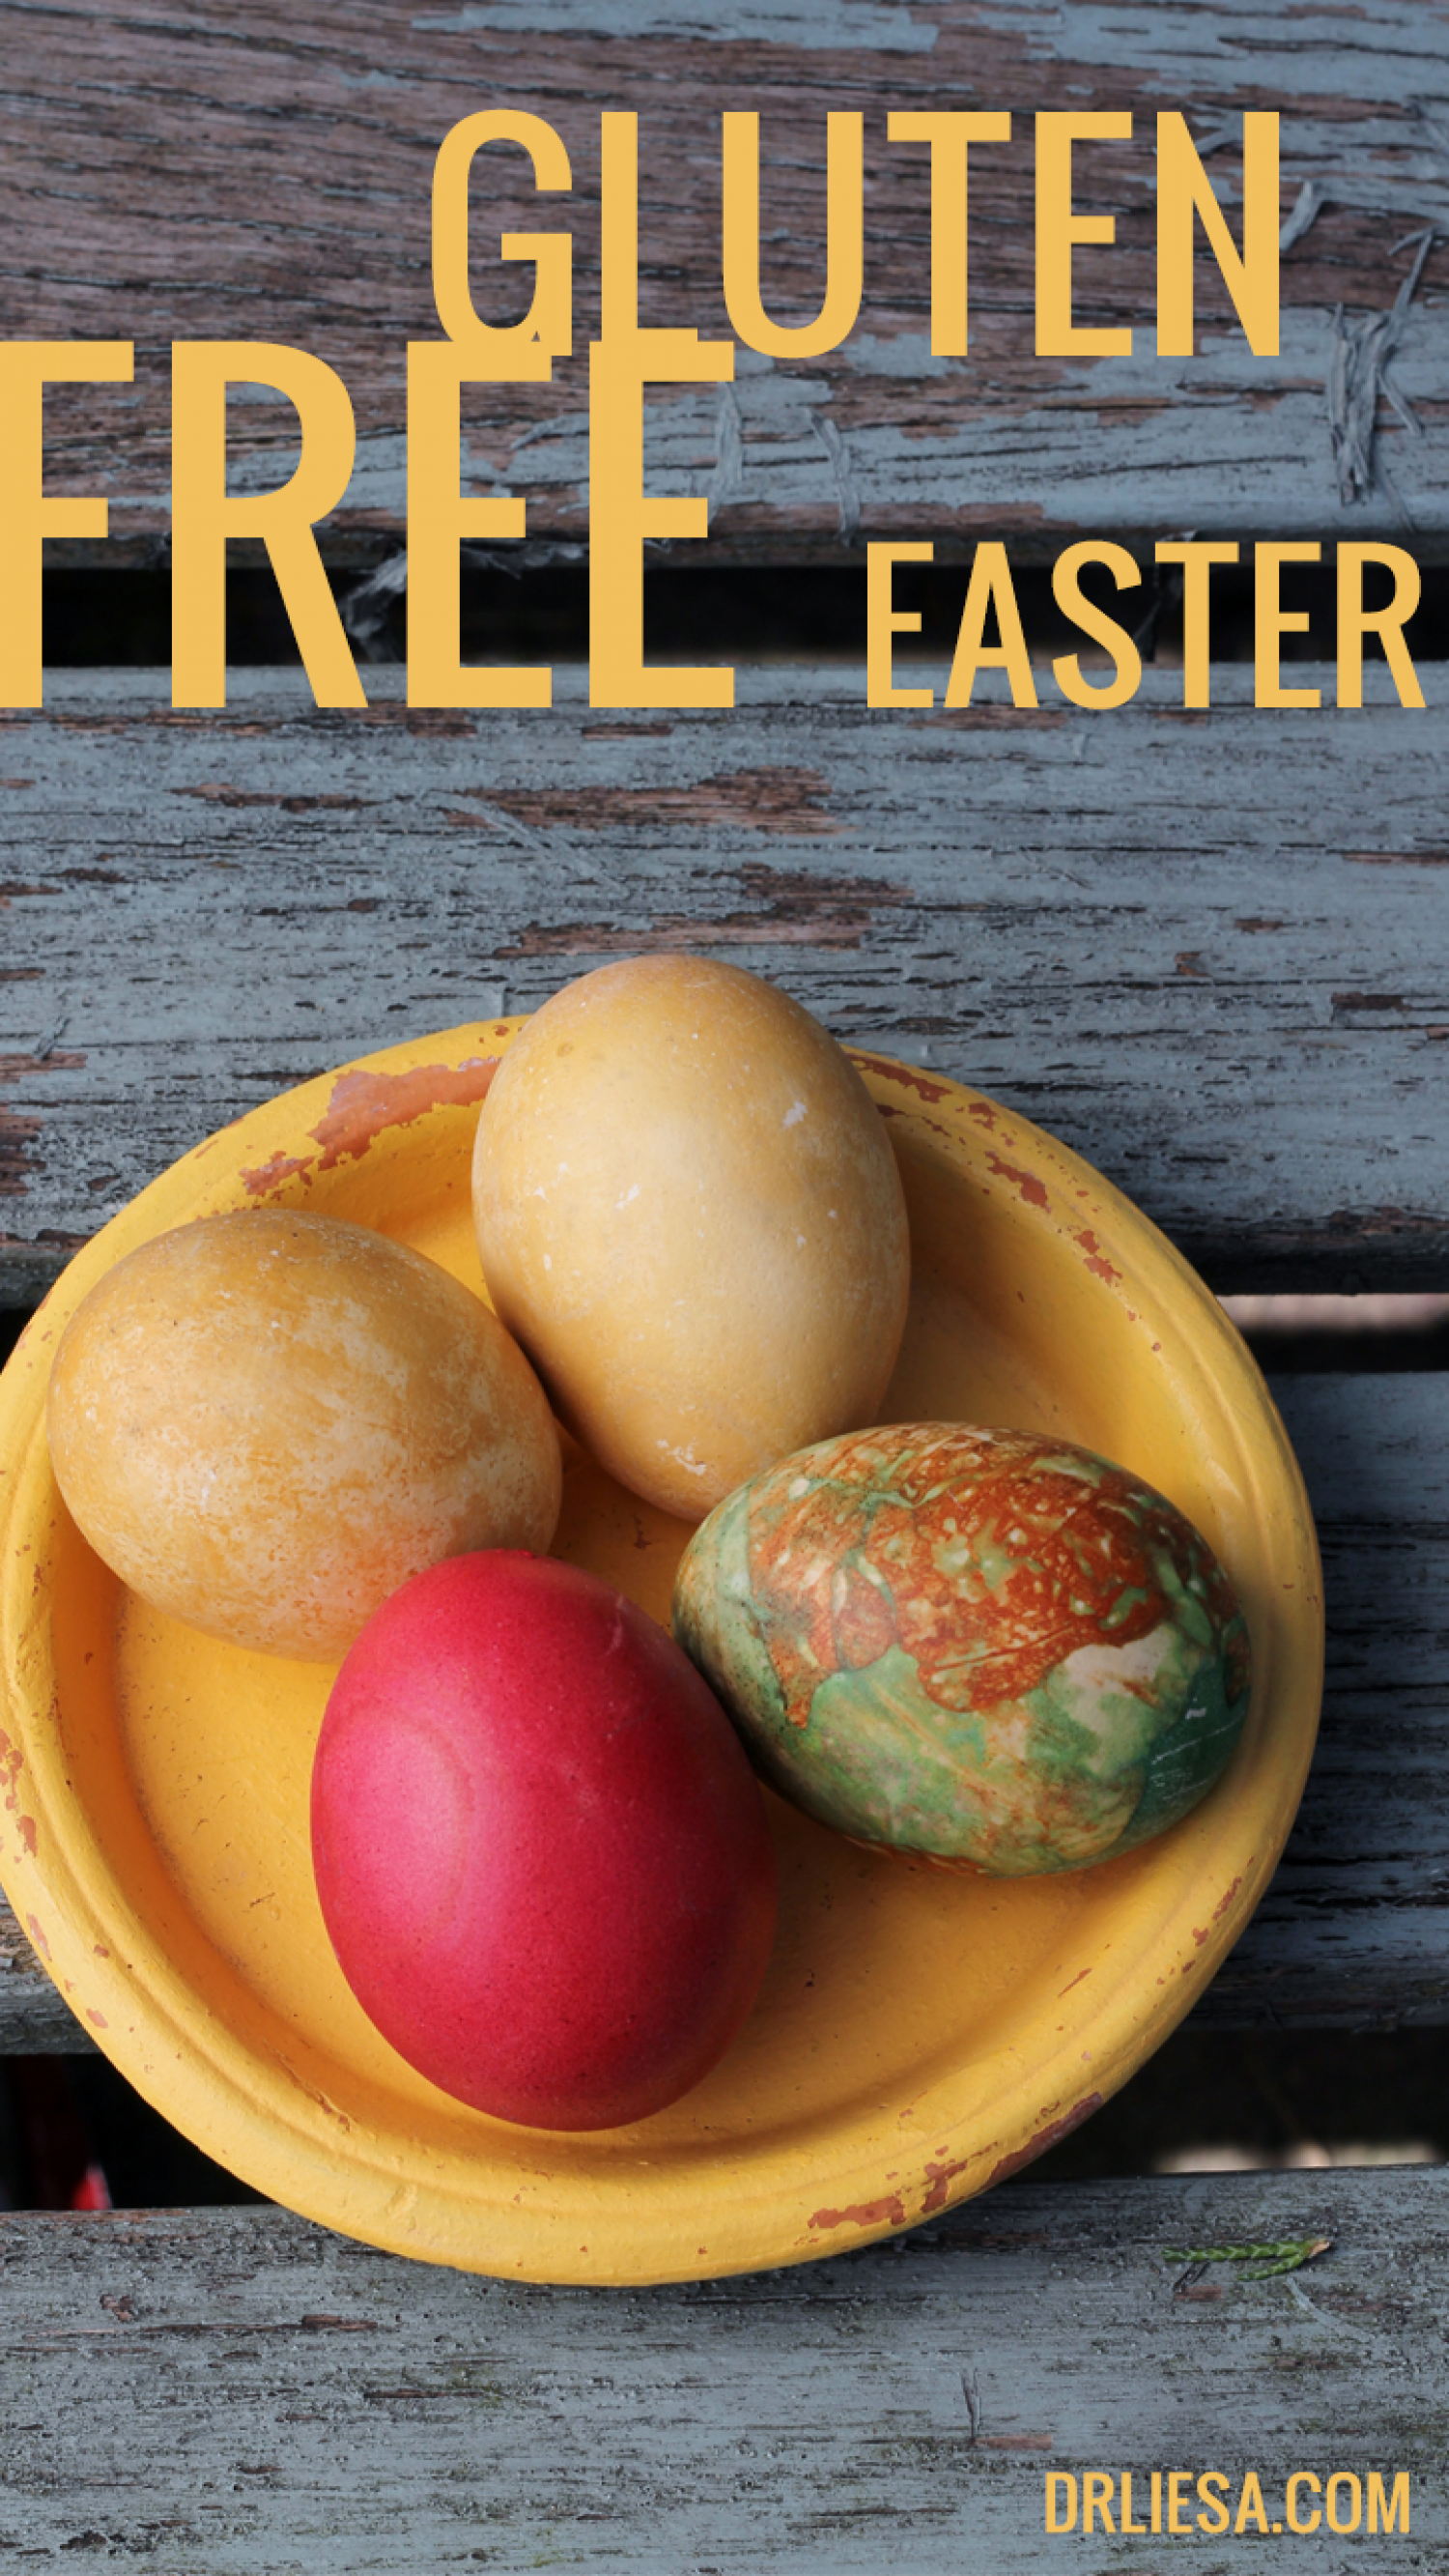 Gluten-Free Easter Infographic